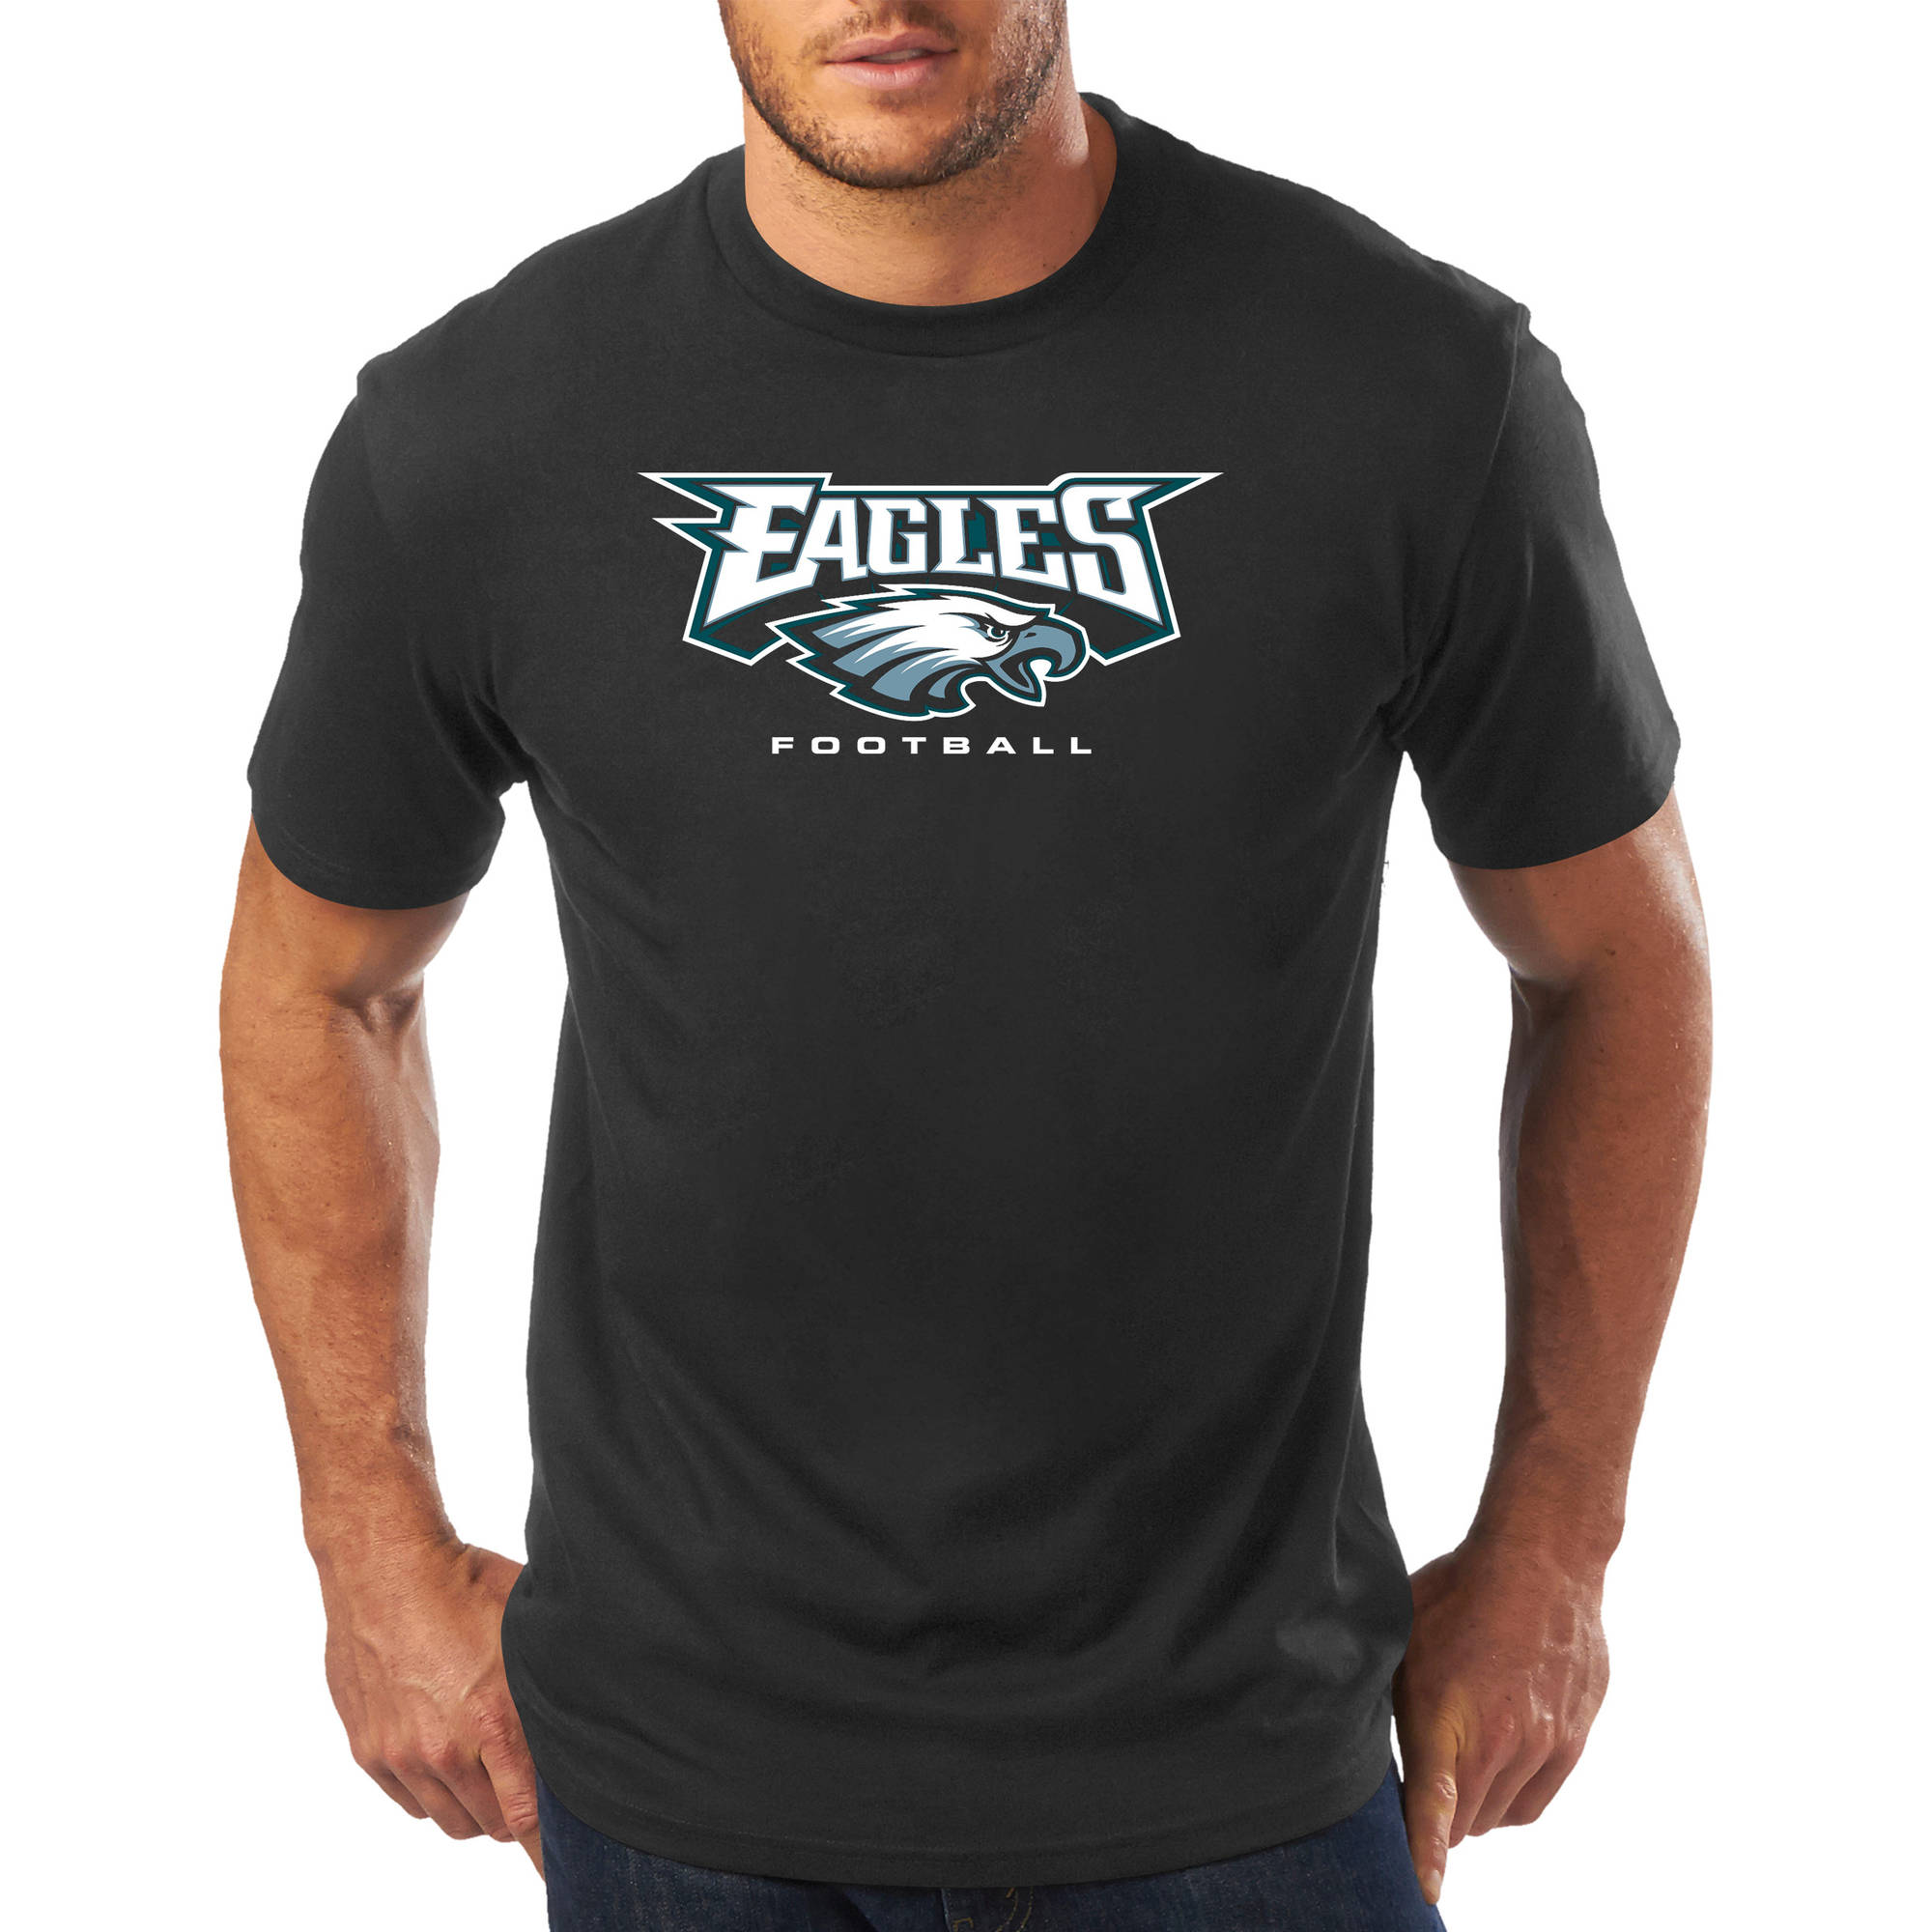 Men's NFL Philadelphia Eagles Short Sleeve Tee